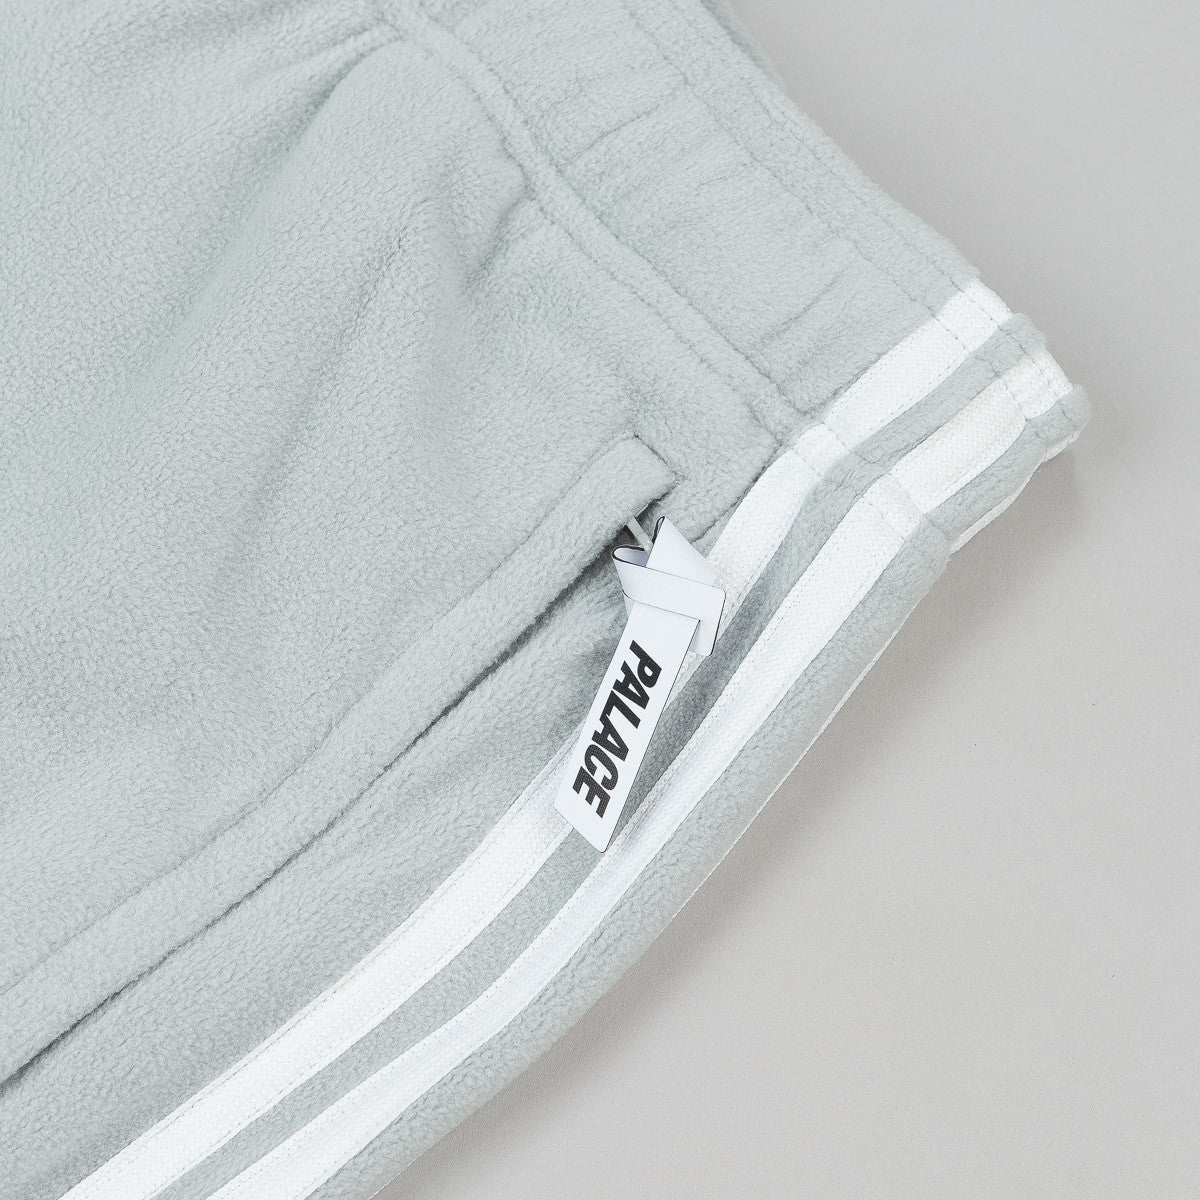 Adidas x Palace Fleece Sweatpants - Grey